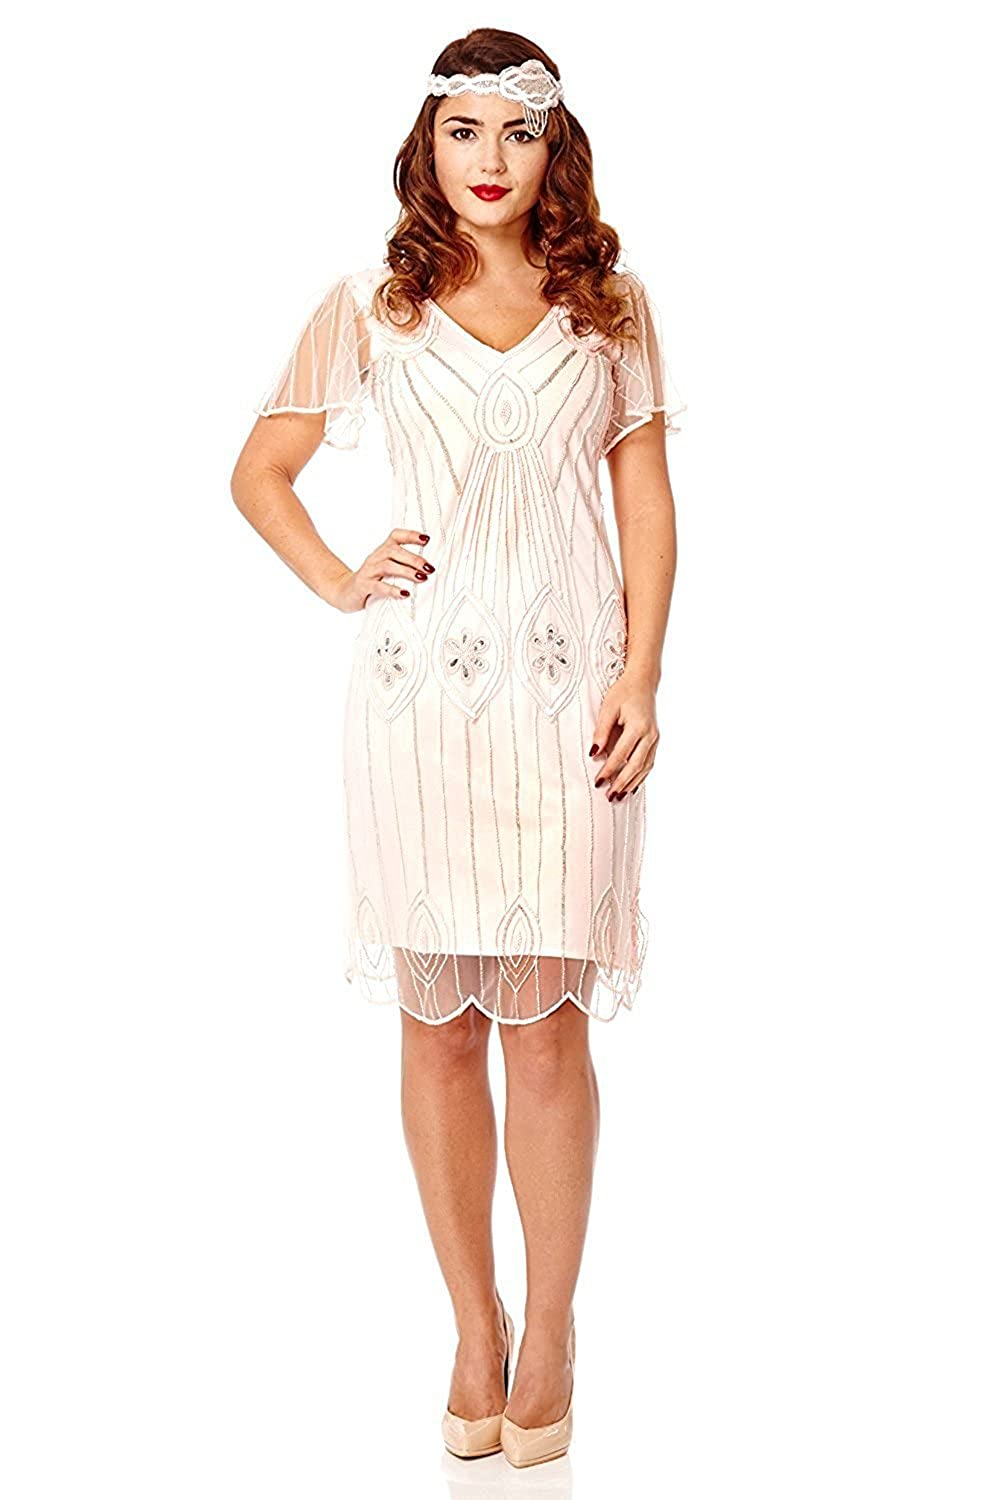 1920s Style Dresses, Flapper Dresses Art Deco Vintage Inspired Flapper Dress in Pink Blush £49.00 AT vintagedancer.com